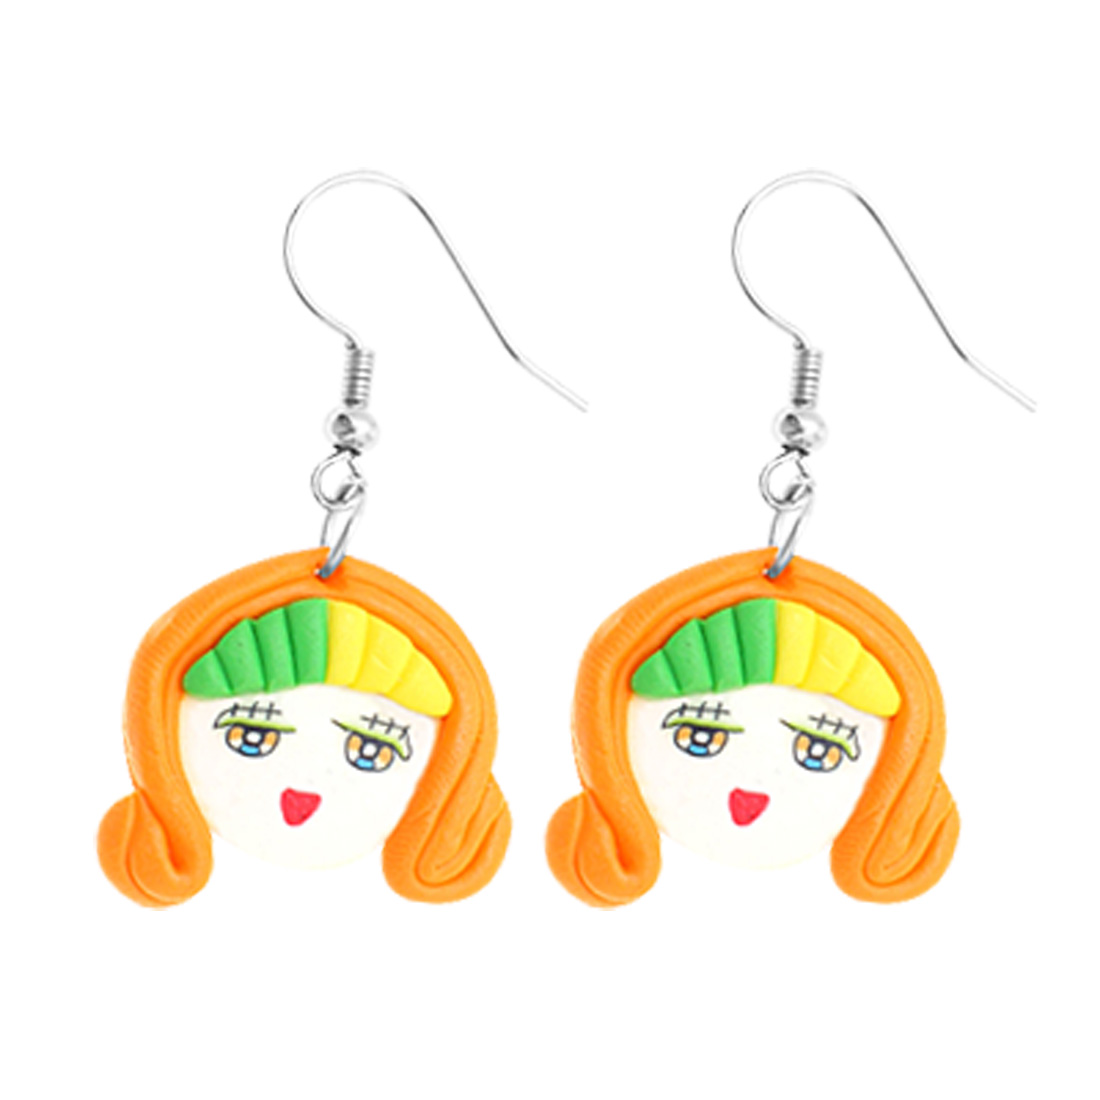 Fashion Jewelry Unique Handcraft Soft Argil Cute Doll Pendent Earrings-Orange